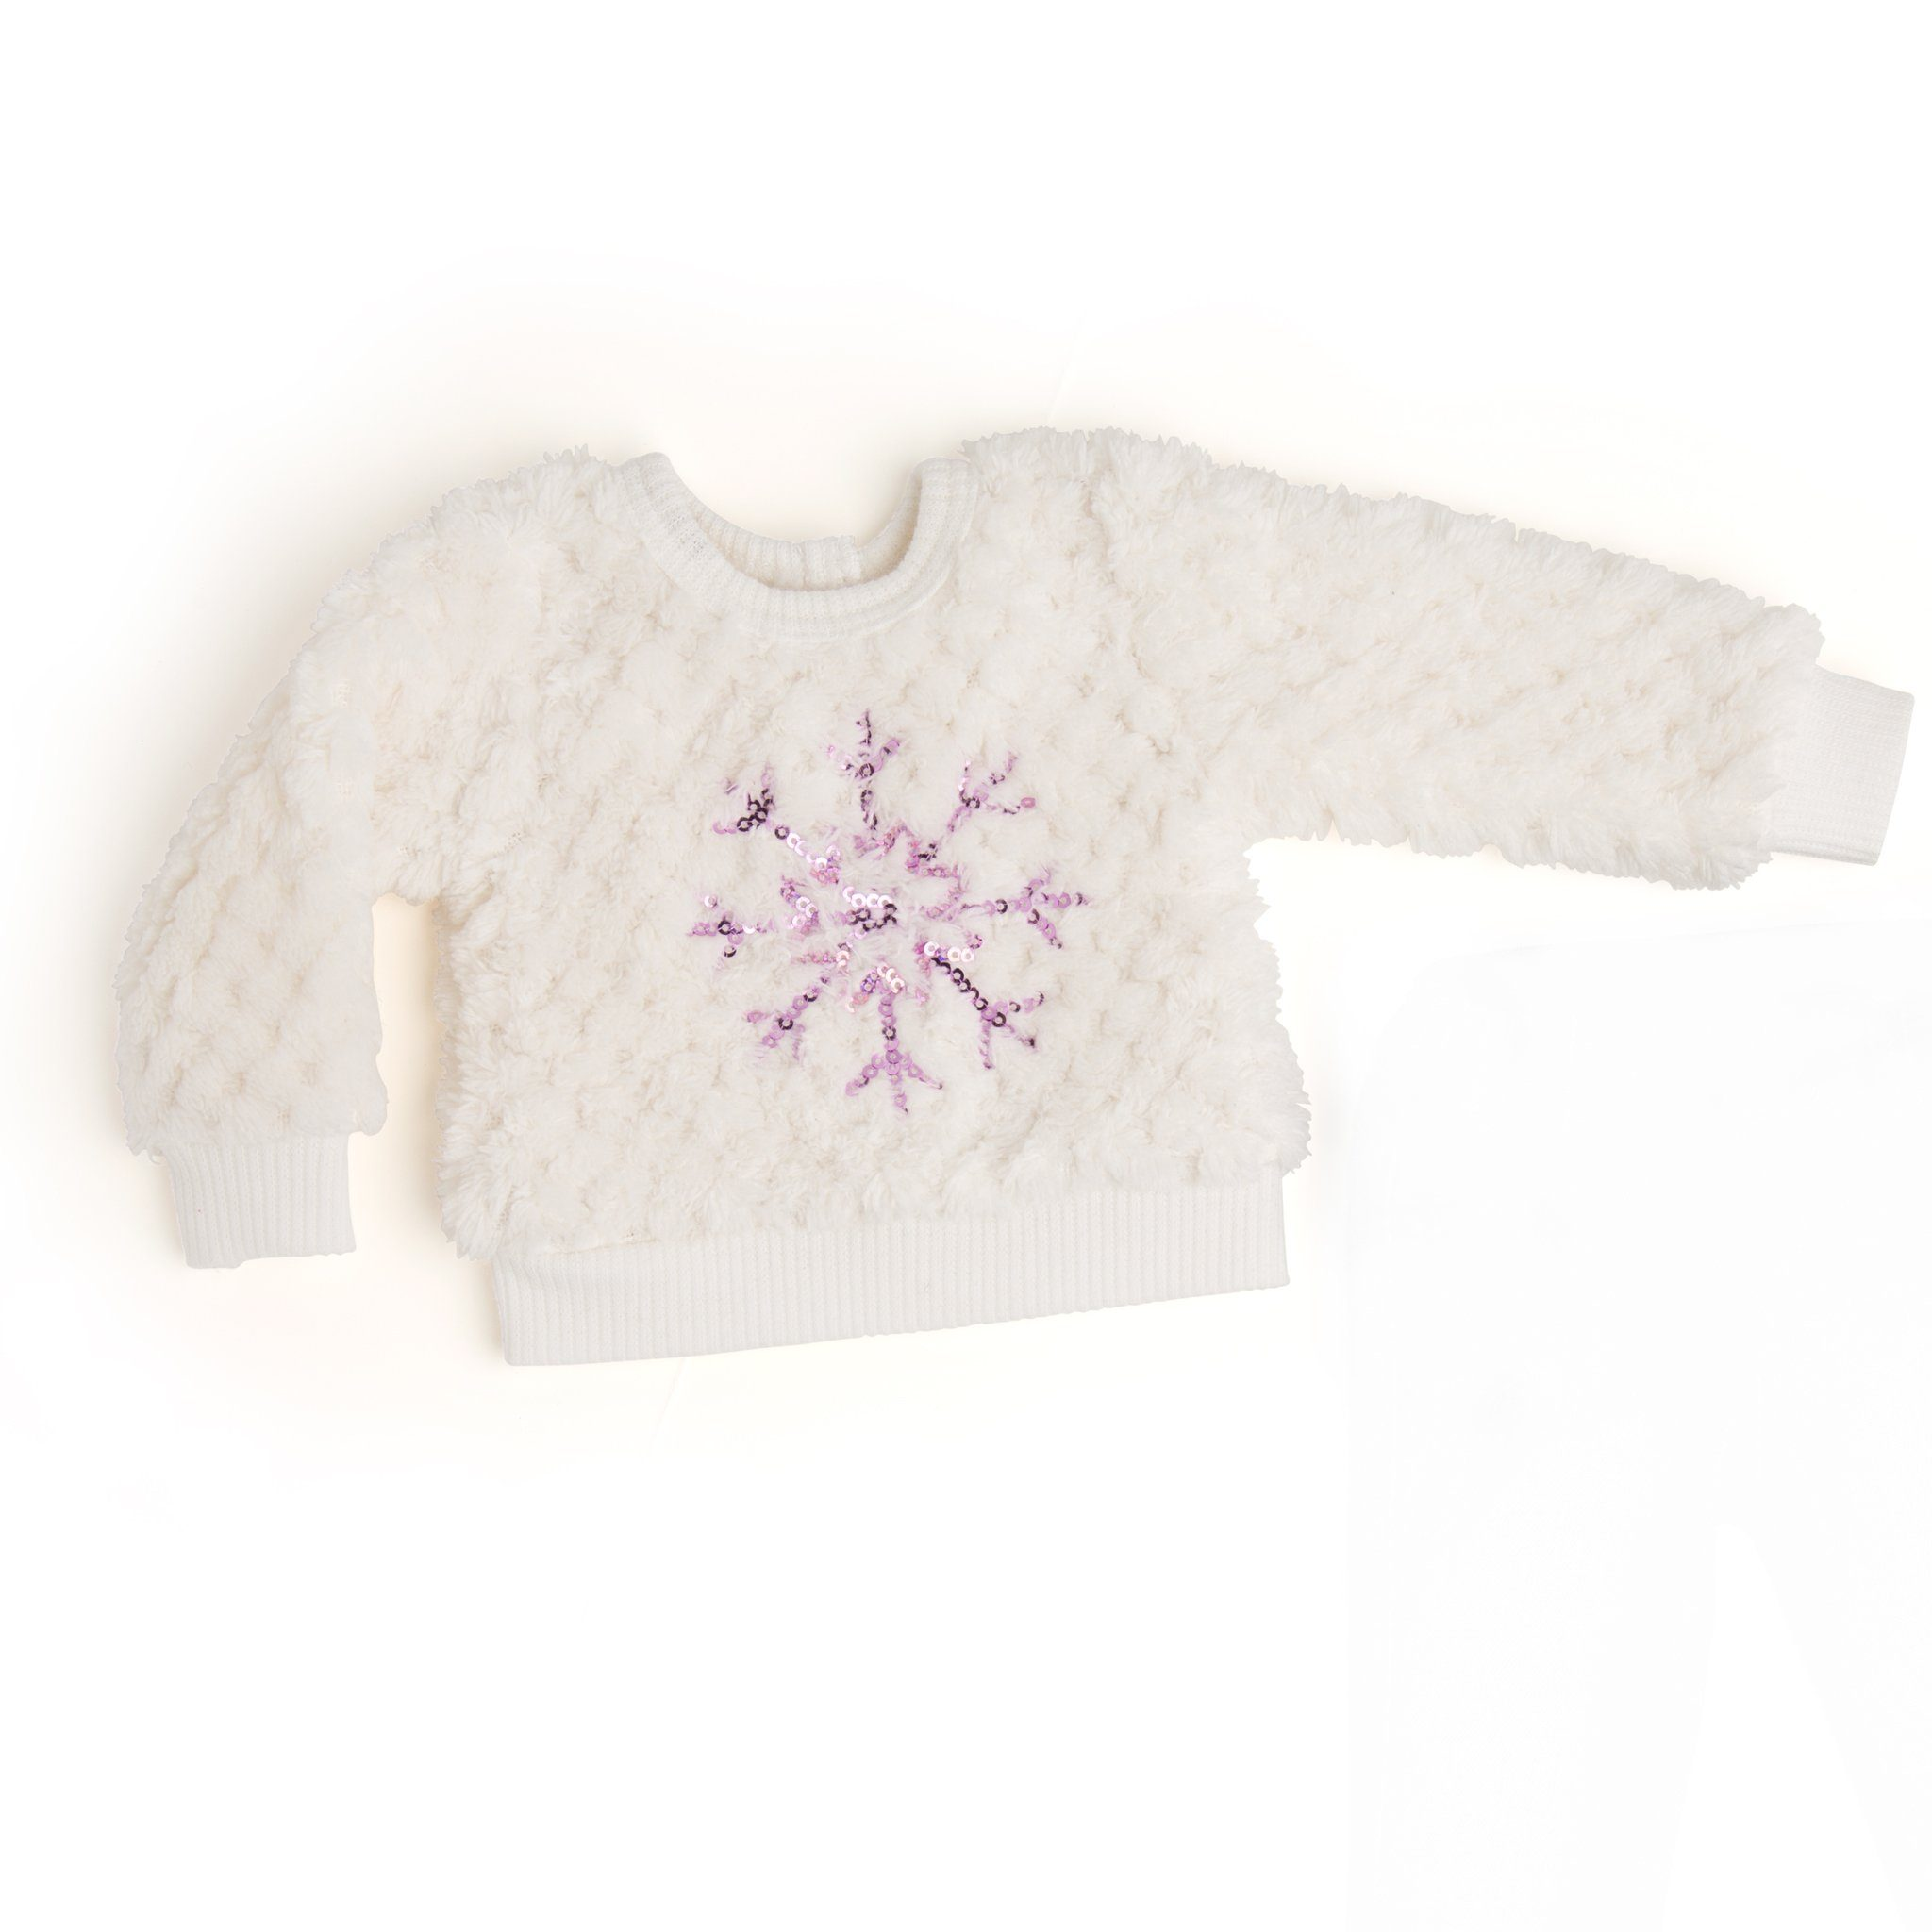 White fuzzy sweater with pink snowflake embroidery fits all 18 inch dolls.